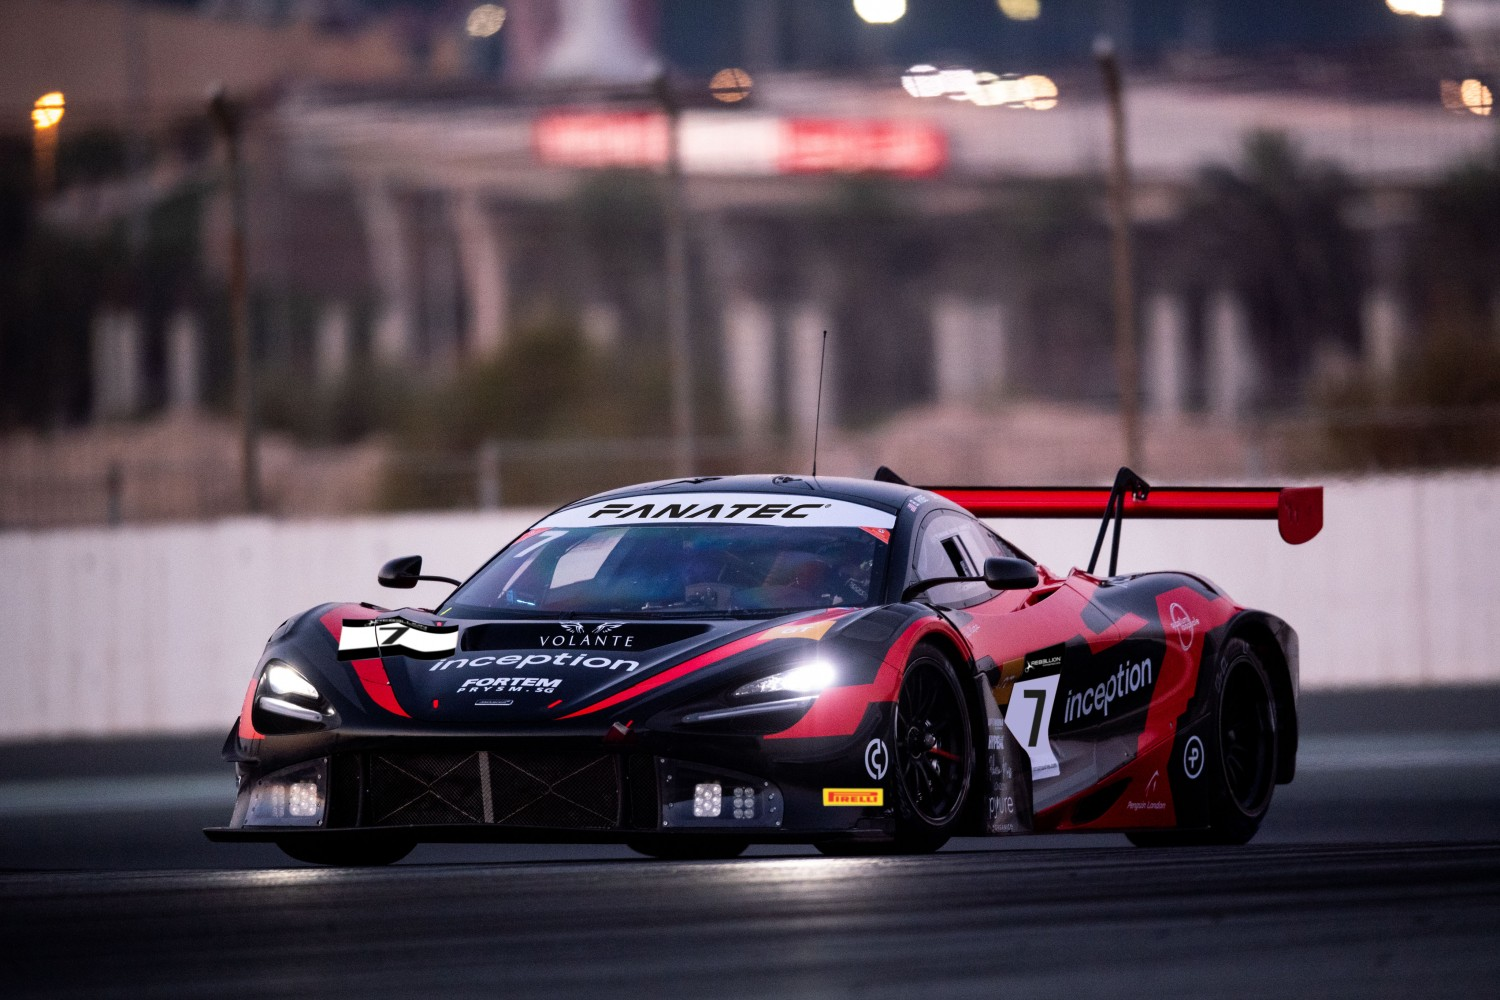 Iribe and Millroy to share McLaren 720S for inception racing in 2021 Endurance Cup